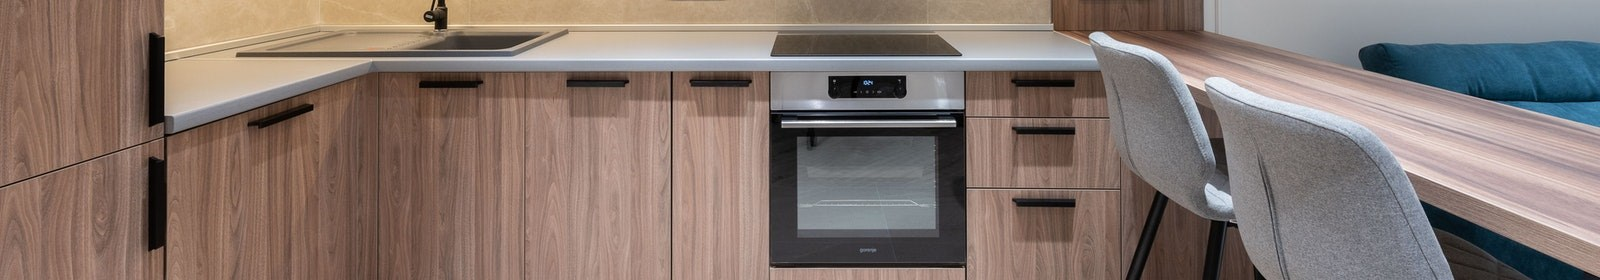 Can quality appliances increase home value?